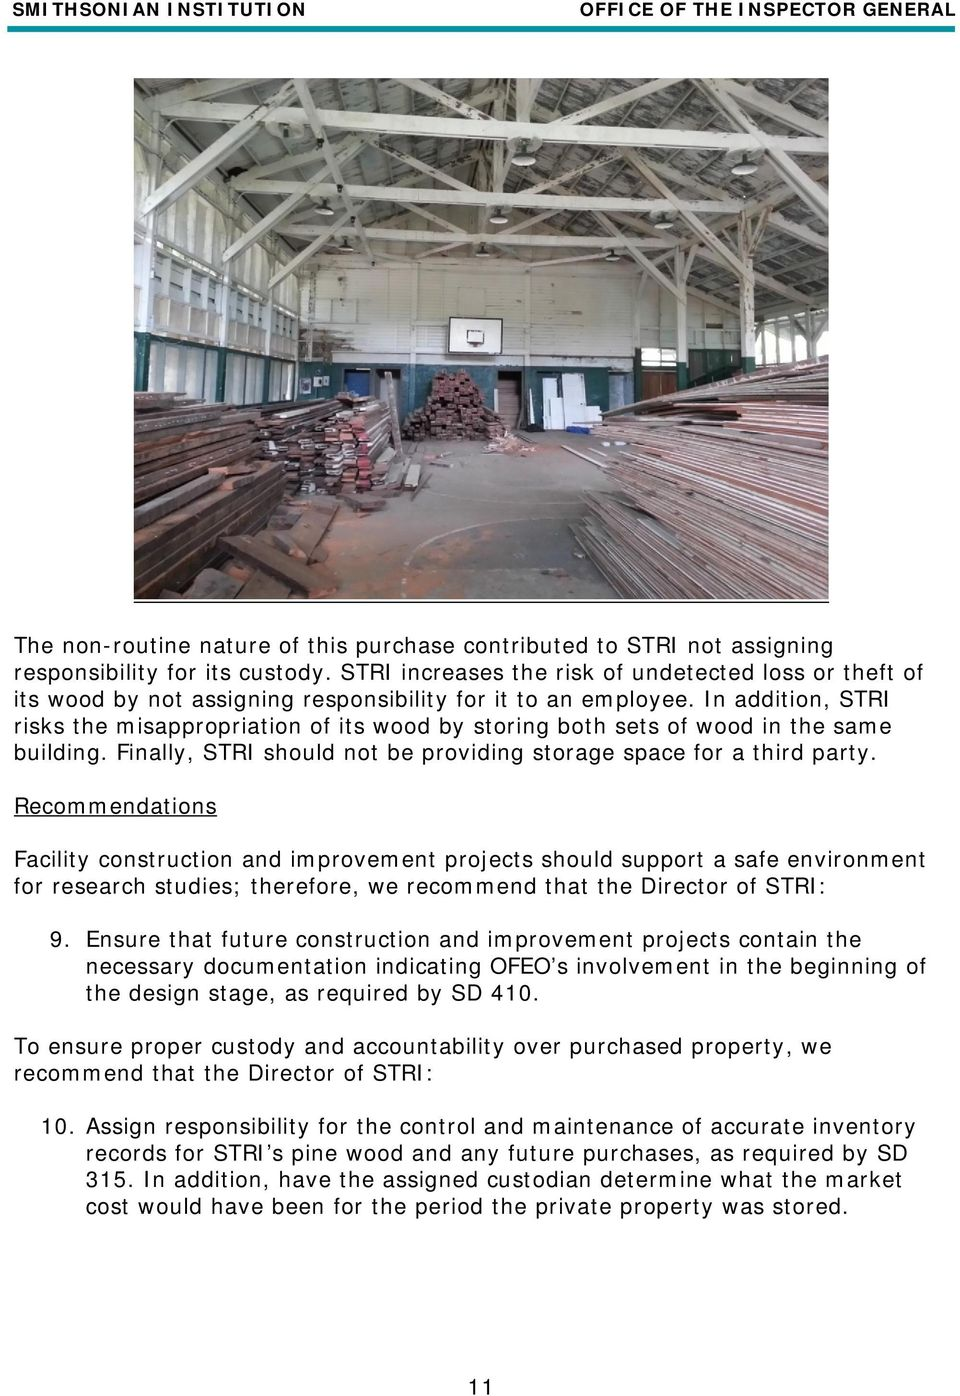 In addition, STRI risks the misappropriation of its wood by storing both sets of wood in the same building. Finally, STRI should not be providing storage space for a third party.